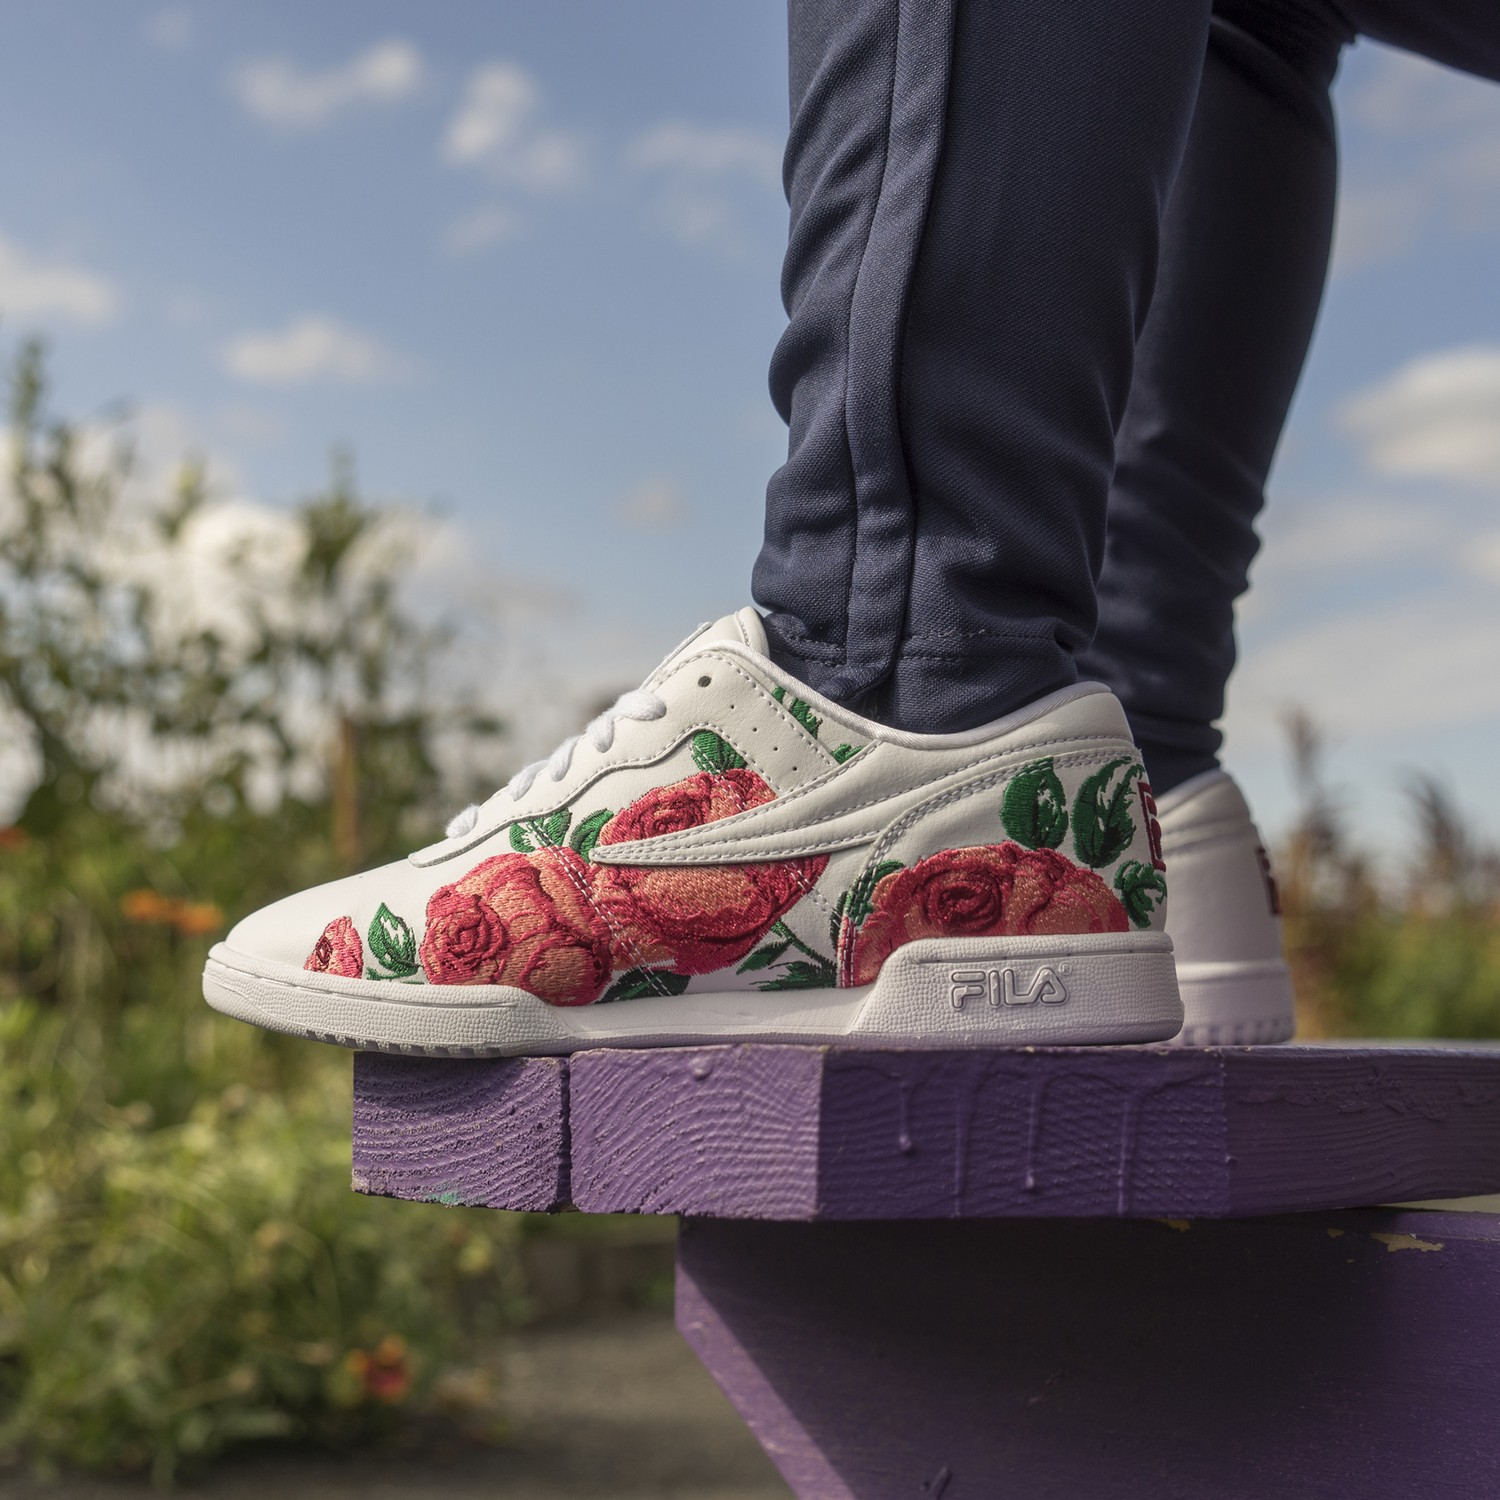 Fila Looks To Spring With Embroidered Original Sneaker And